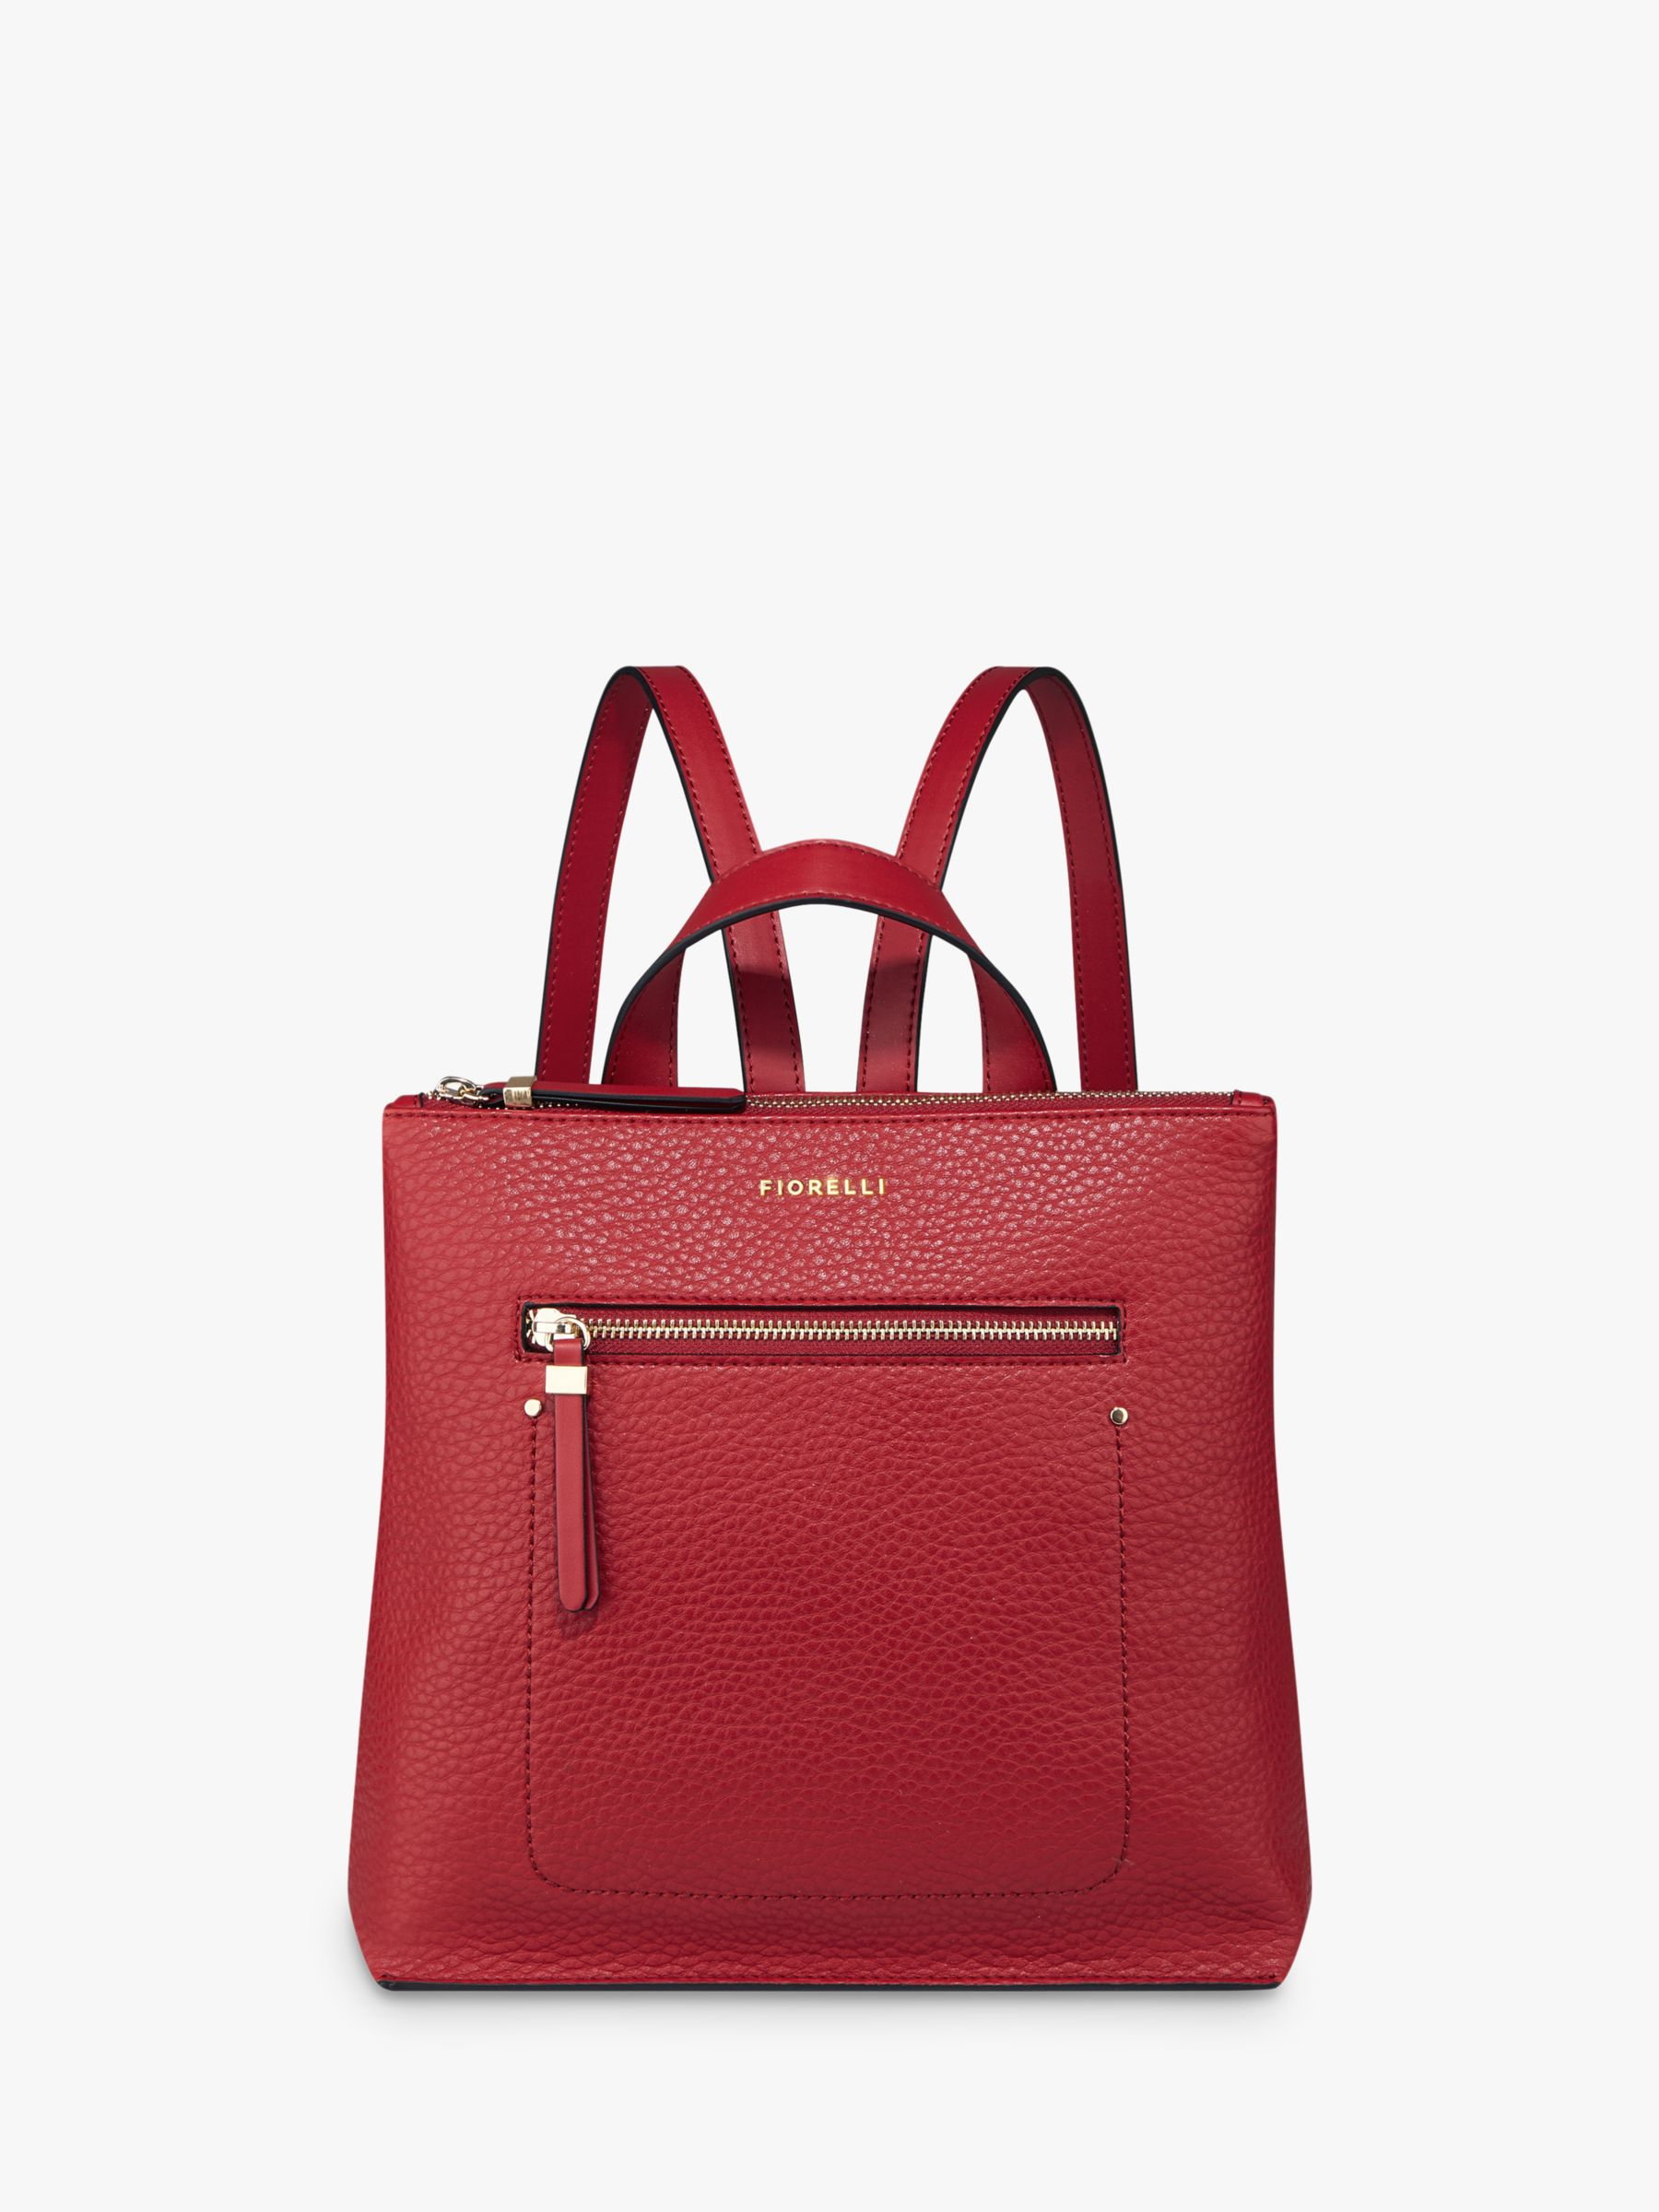 Fiorelli Fiorelli Finley Mini Zip Top Backpack, Red